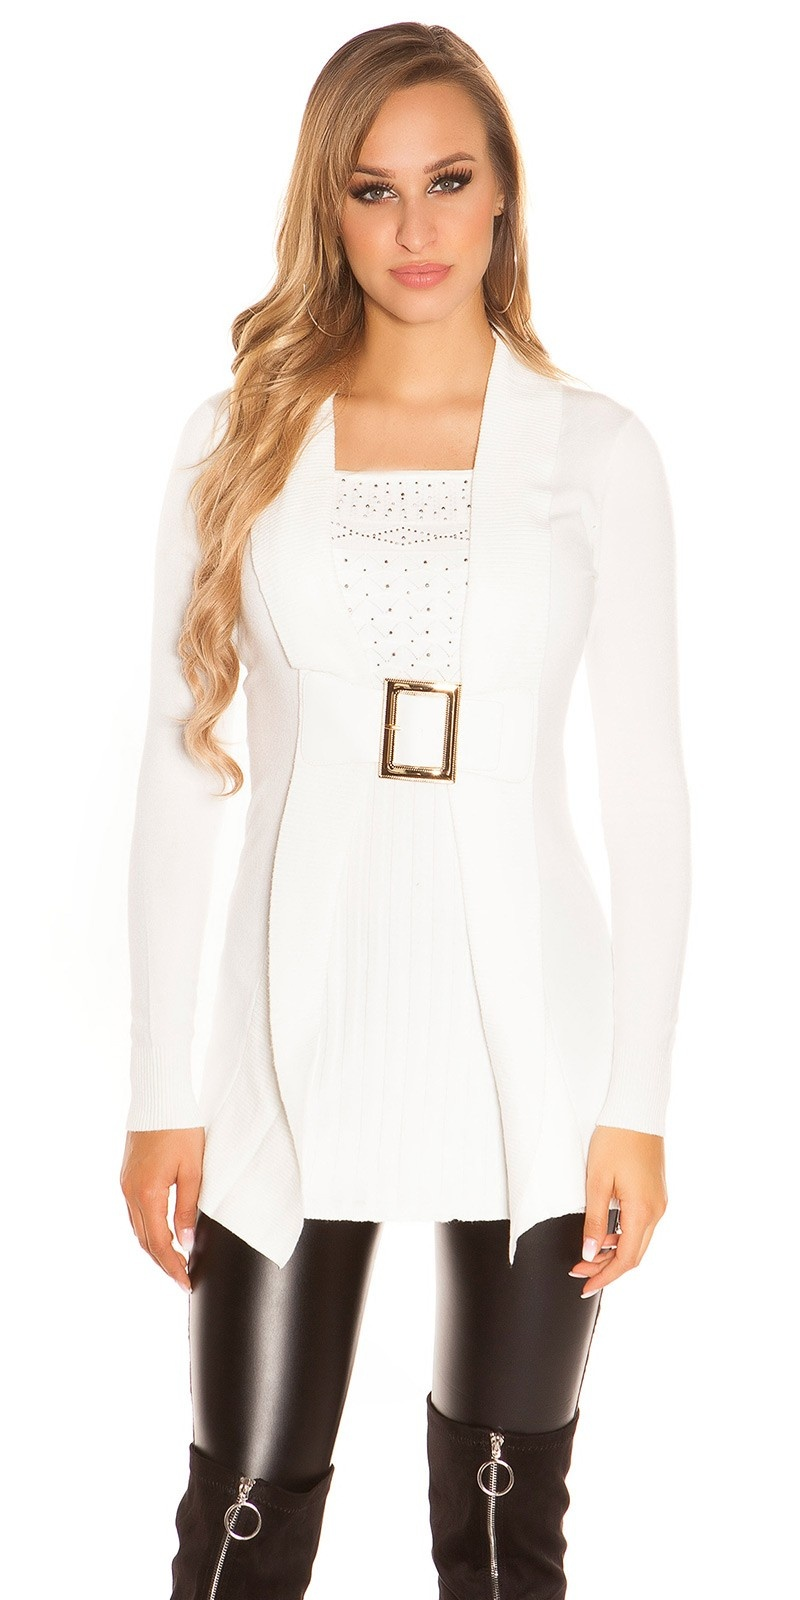 Sexy long jumper 2in1 look w. buckle & rhinestones White